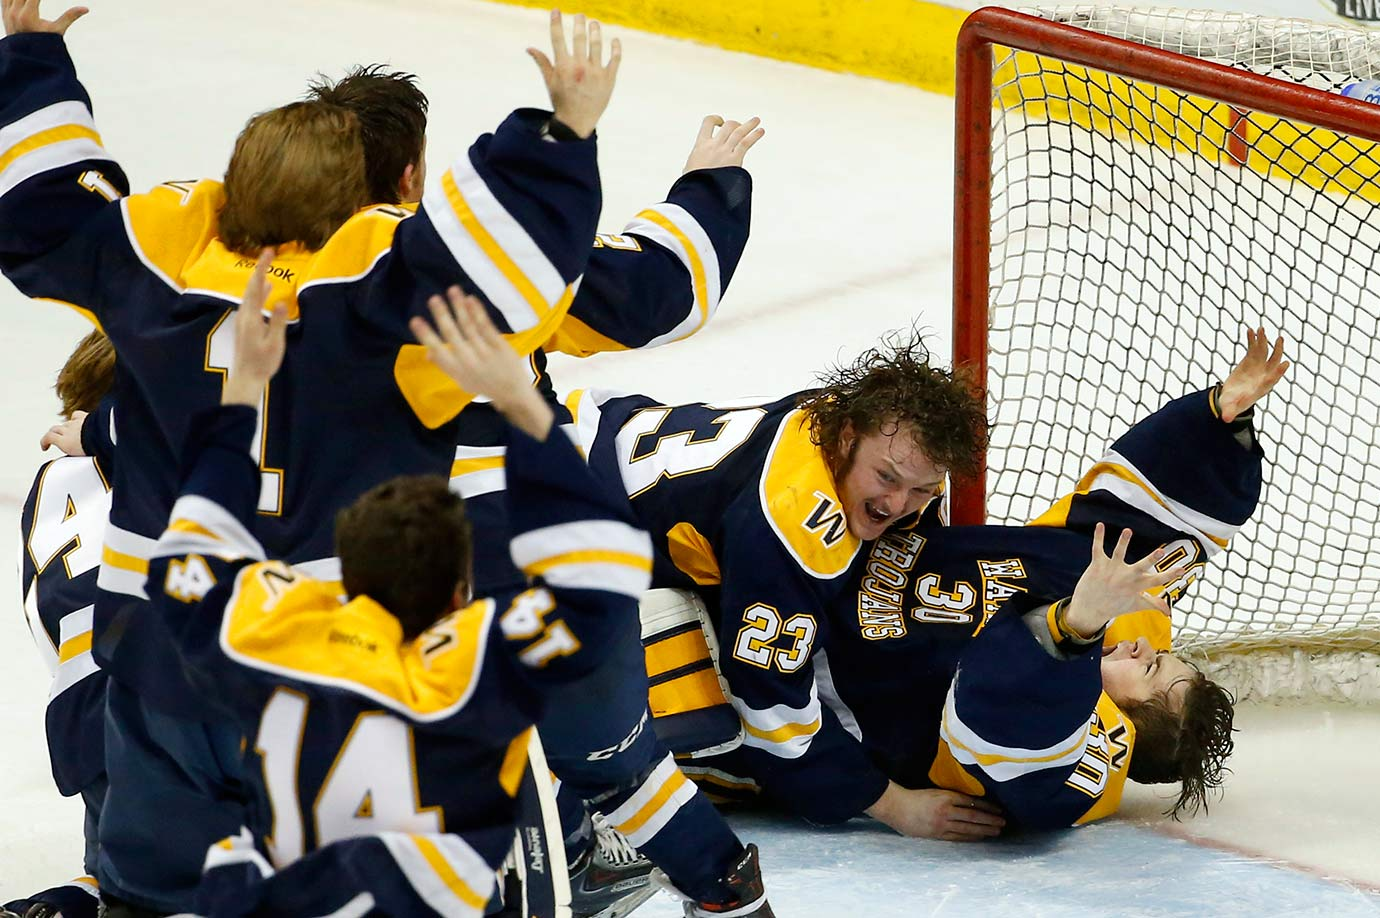 Wayzata defenseman Hank Sorensen and teammates pile on goalie Alex Schilling after the team defeated Eden Prairie 5-3 to win the boys' Class AA state hockey tournament championship game in St. Paul, Minn.